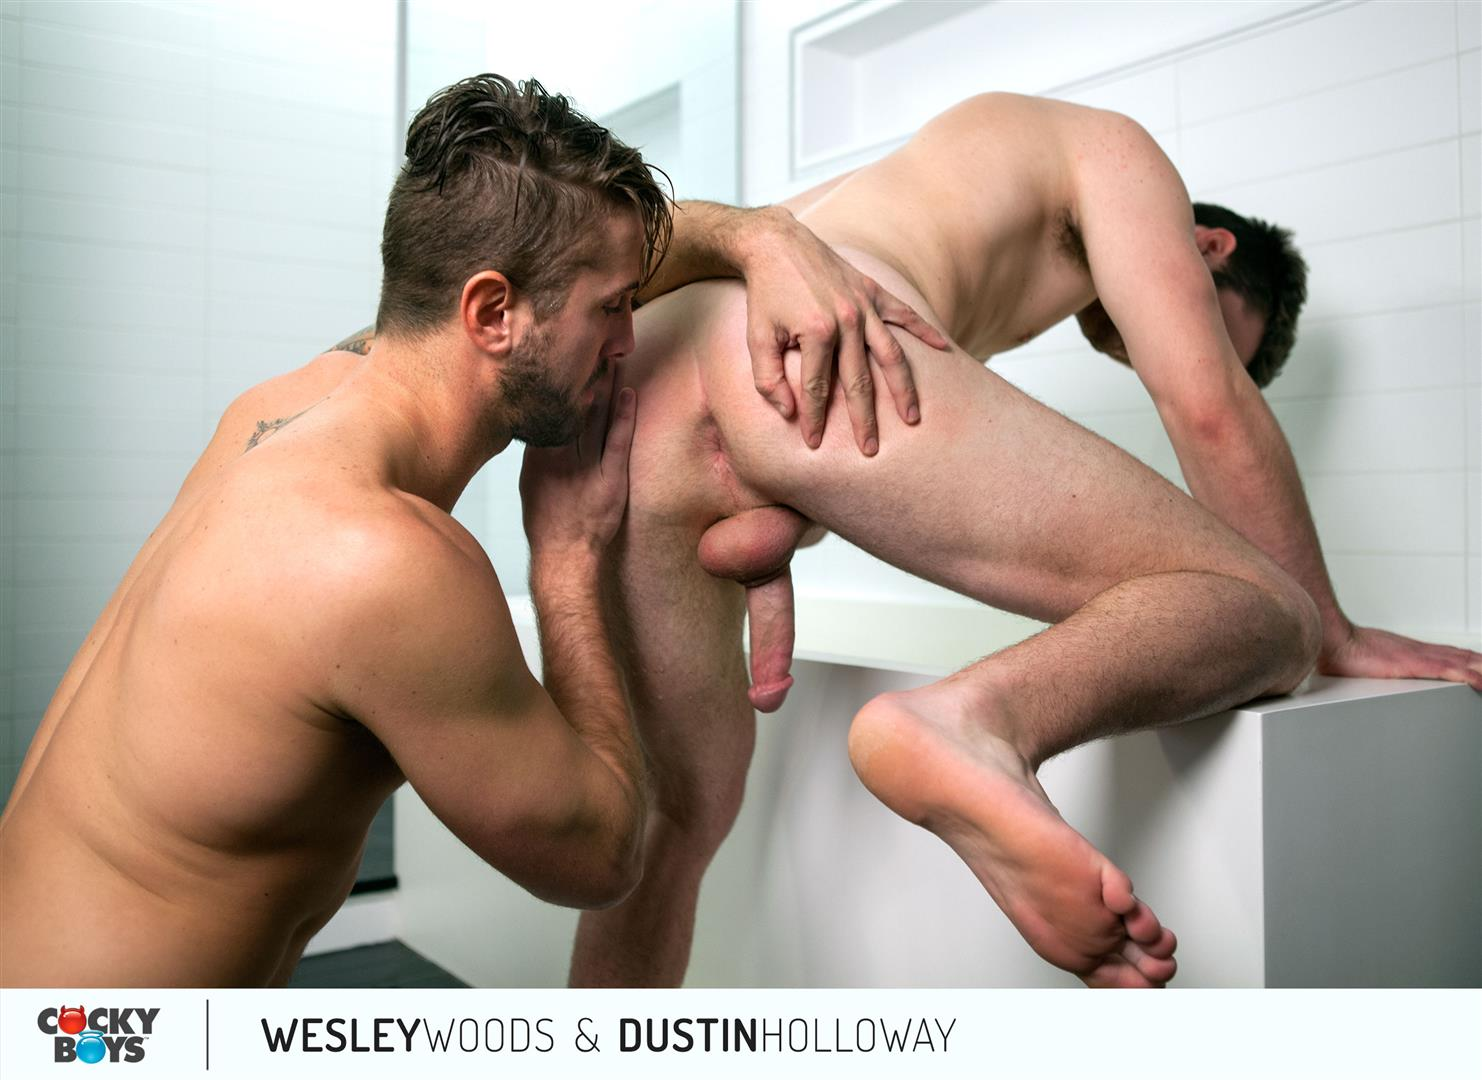 Cockyboys Wesley Woods and Dustin Holloway Hung Hunks Flip Fucking Amateur Gay Porn 14 Cockyboys:  Wesley Woods and Dustin Holloway Flip Flop Fucking